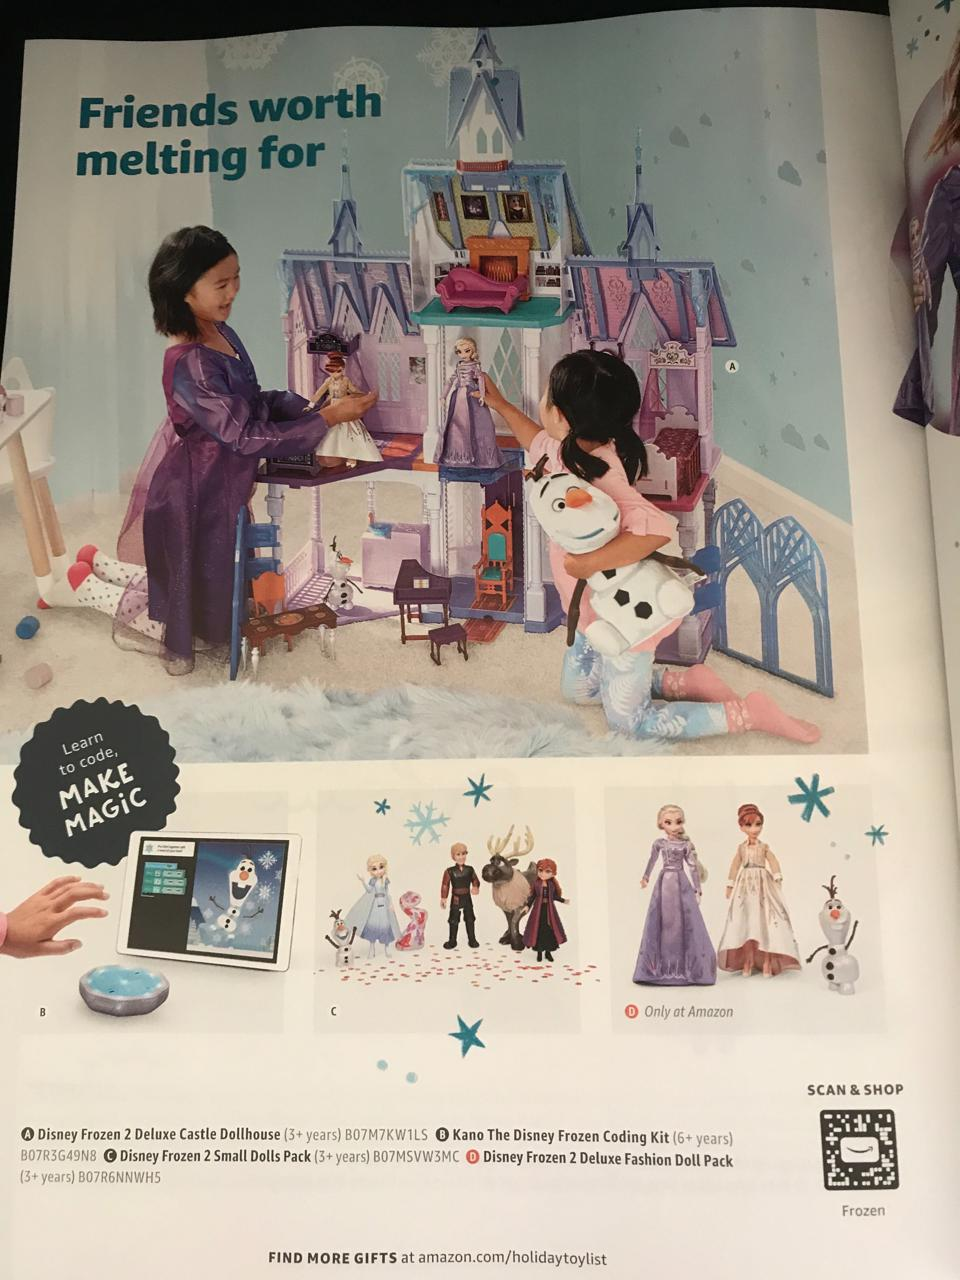 Sample page from Amazon's 2019 Toy Catalog with QR SmileCode